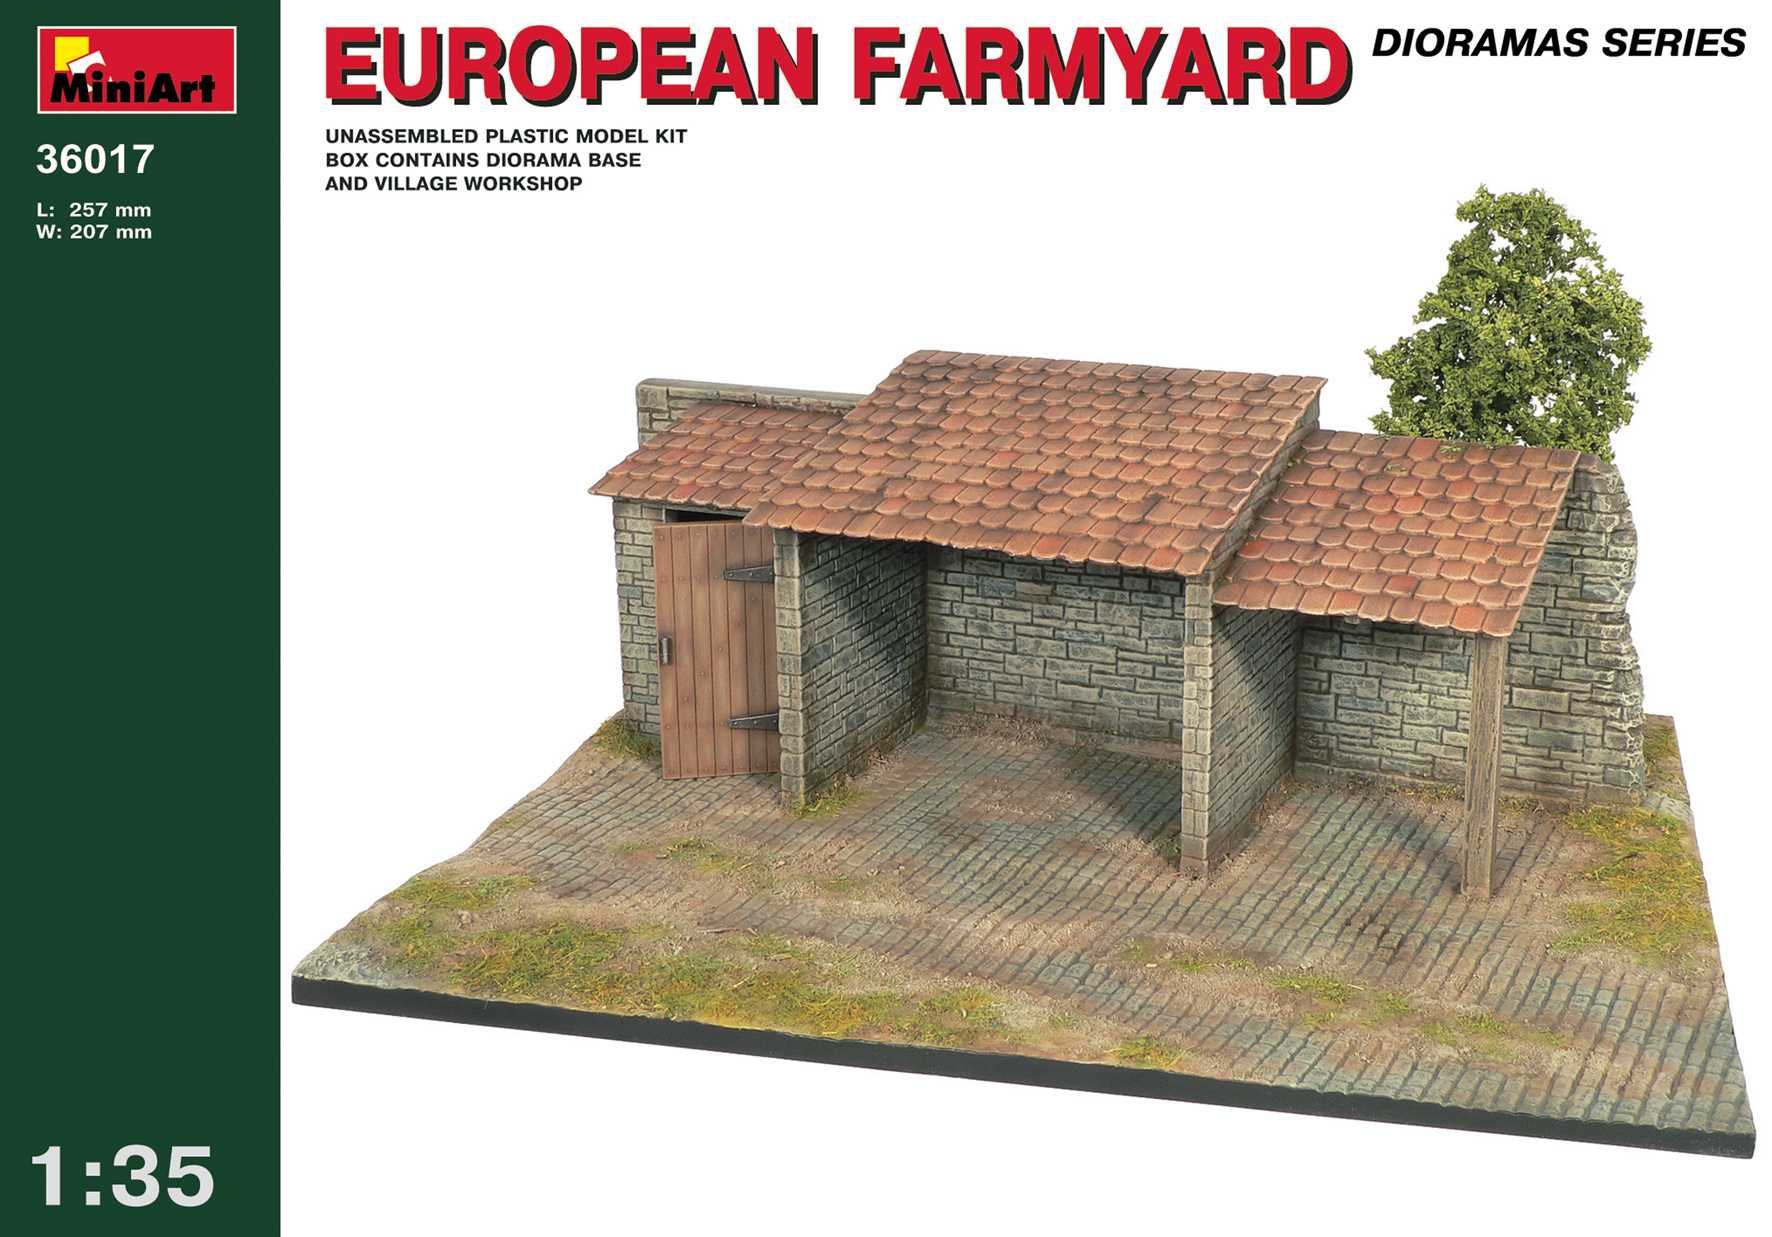 36017 EUROPEAN FARMYARD